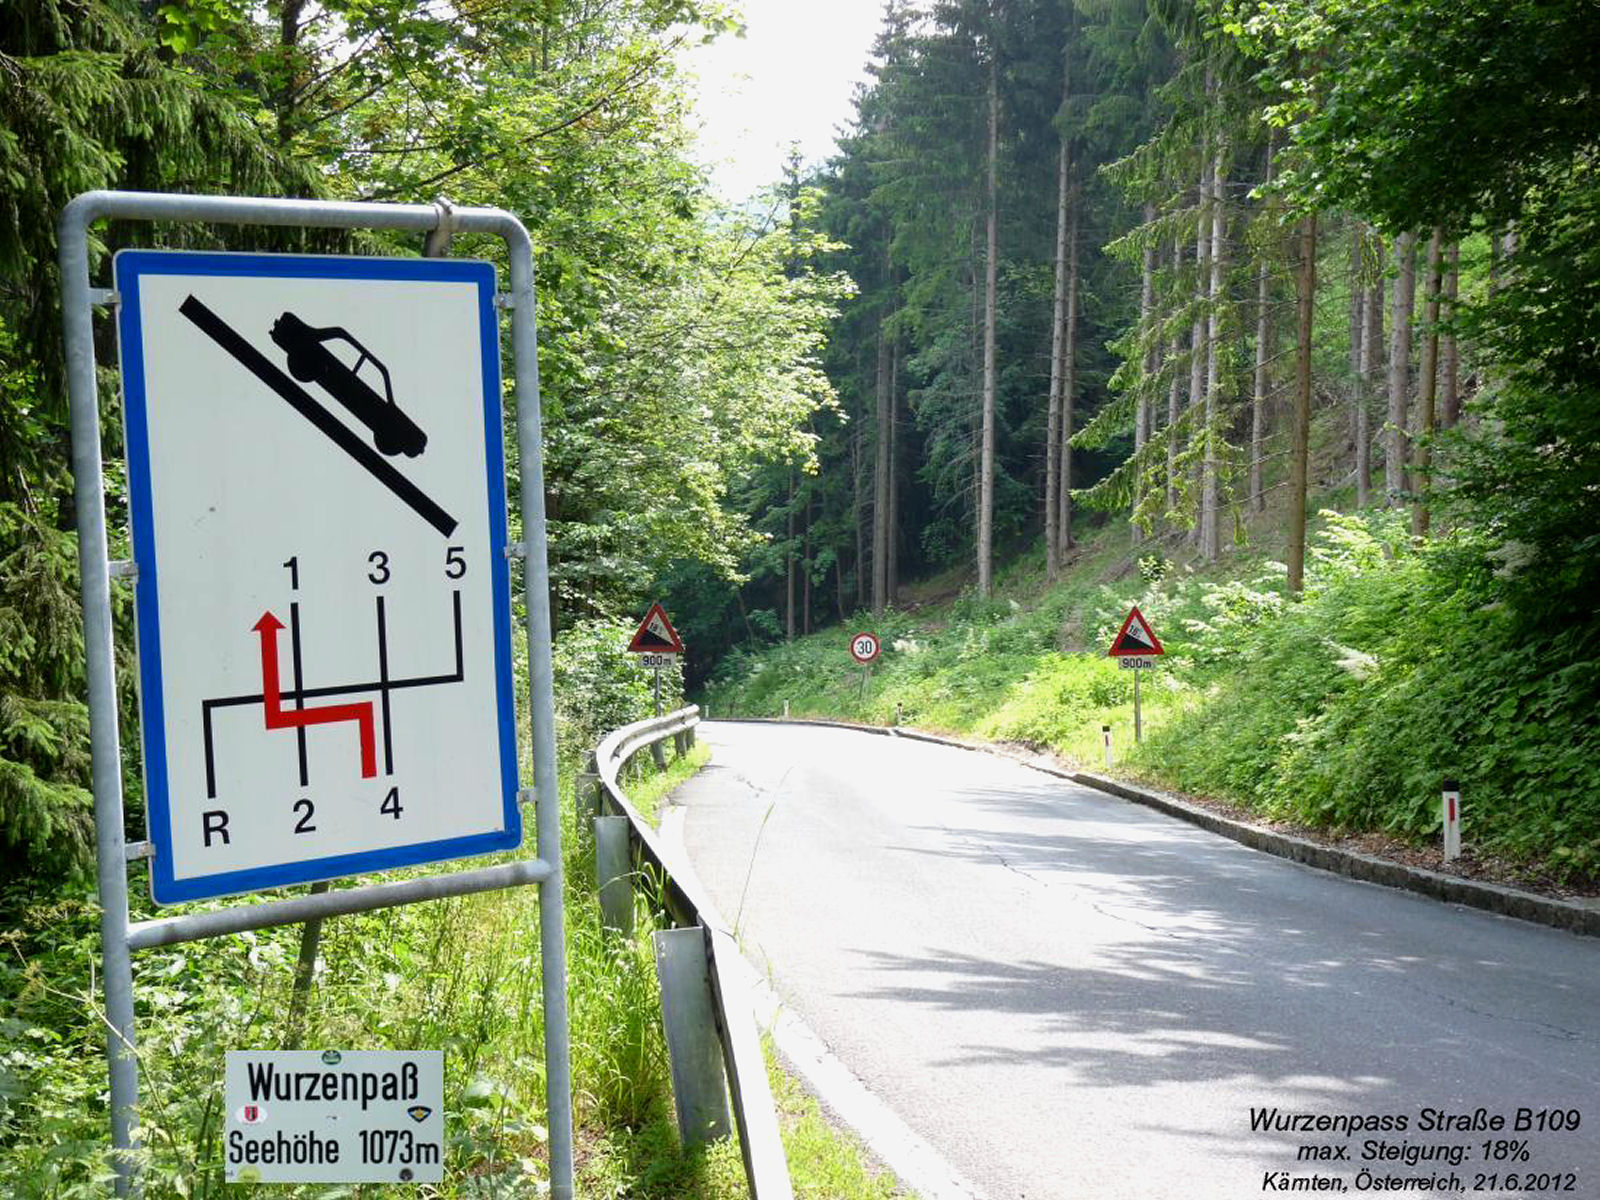 The Wurzen Pass road is very curvy and includes some steep ascents with a maximum grade of 18 percent